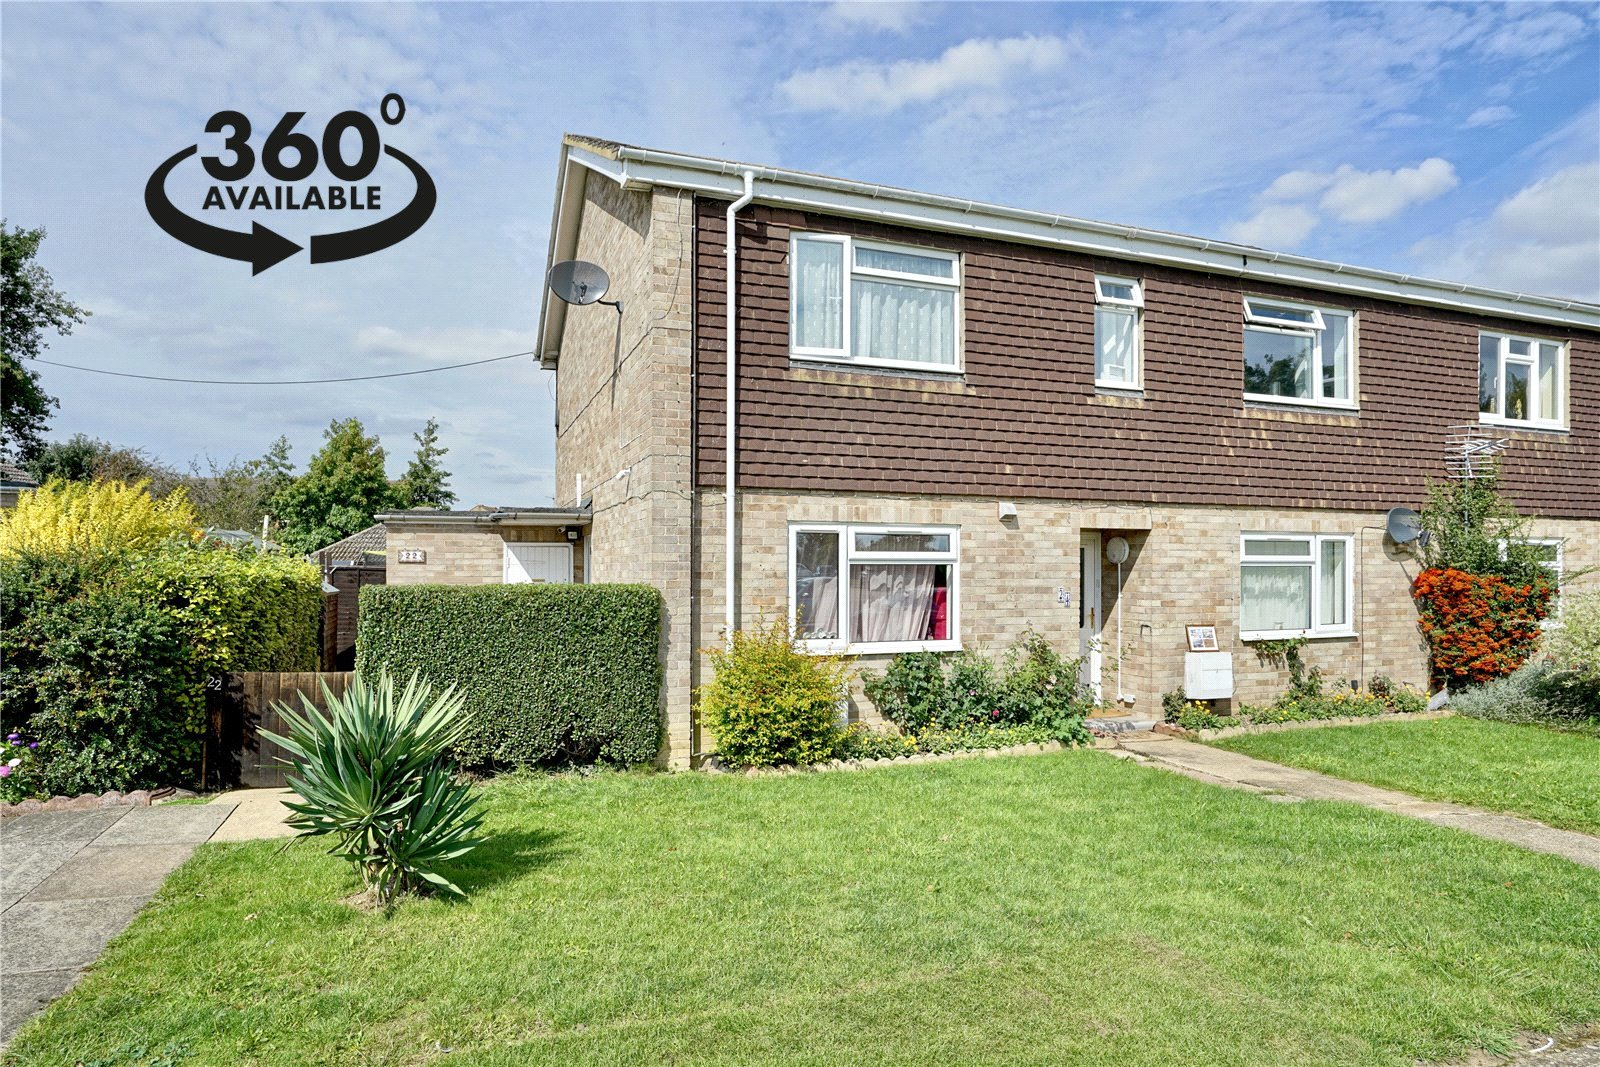 2 bed for sale in Buckden, Weir Close, PE19 5TH, PE19